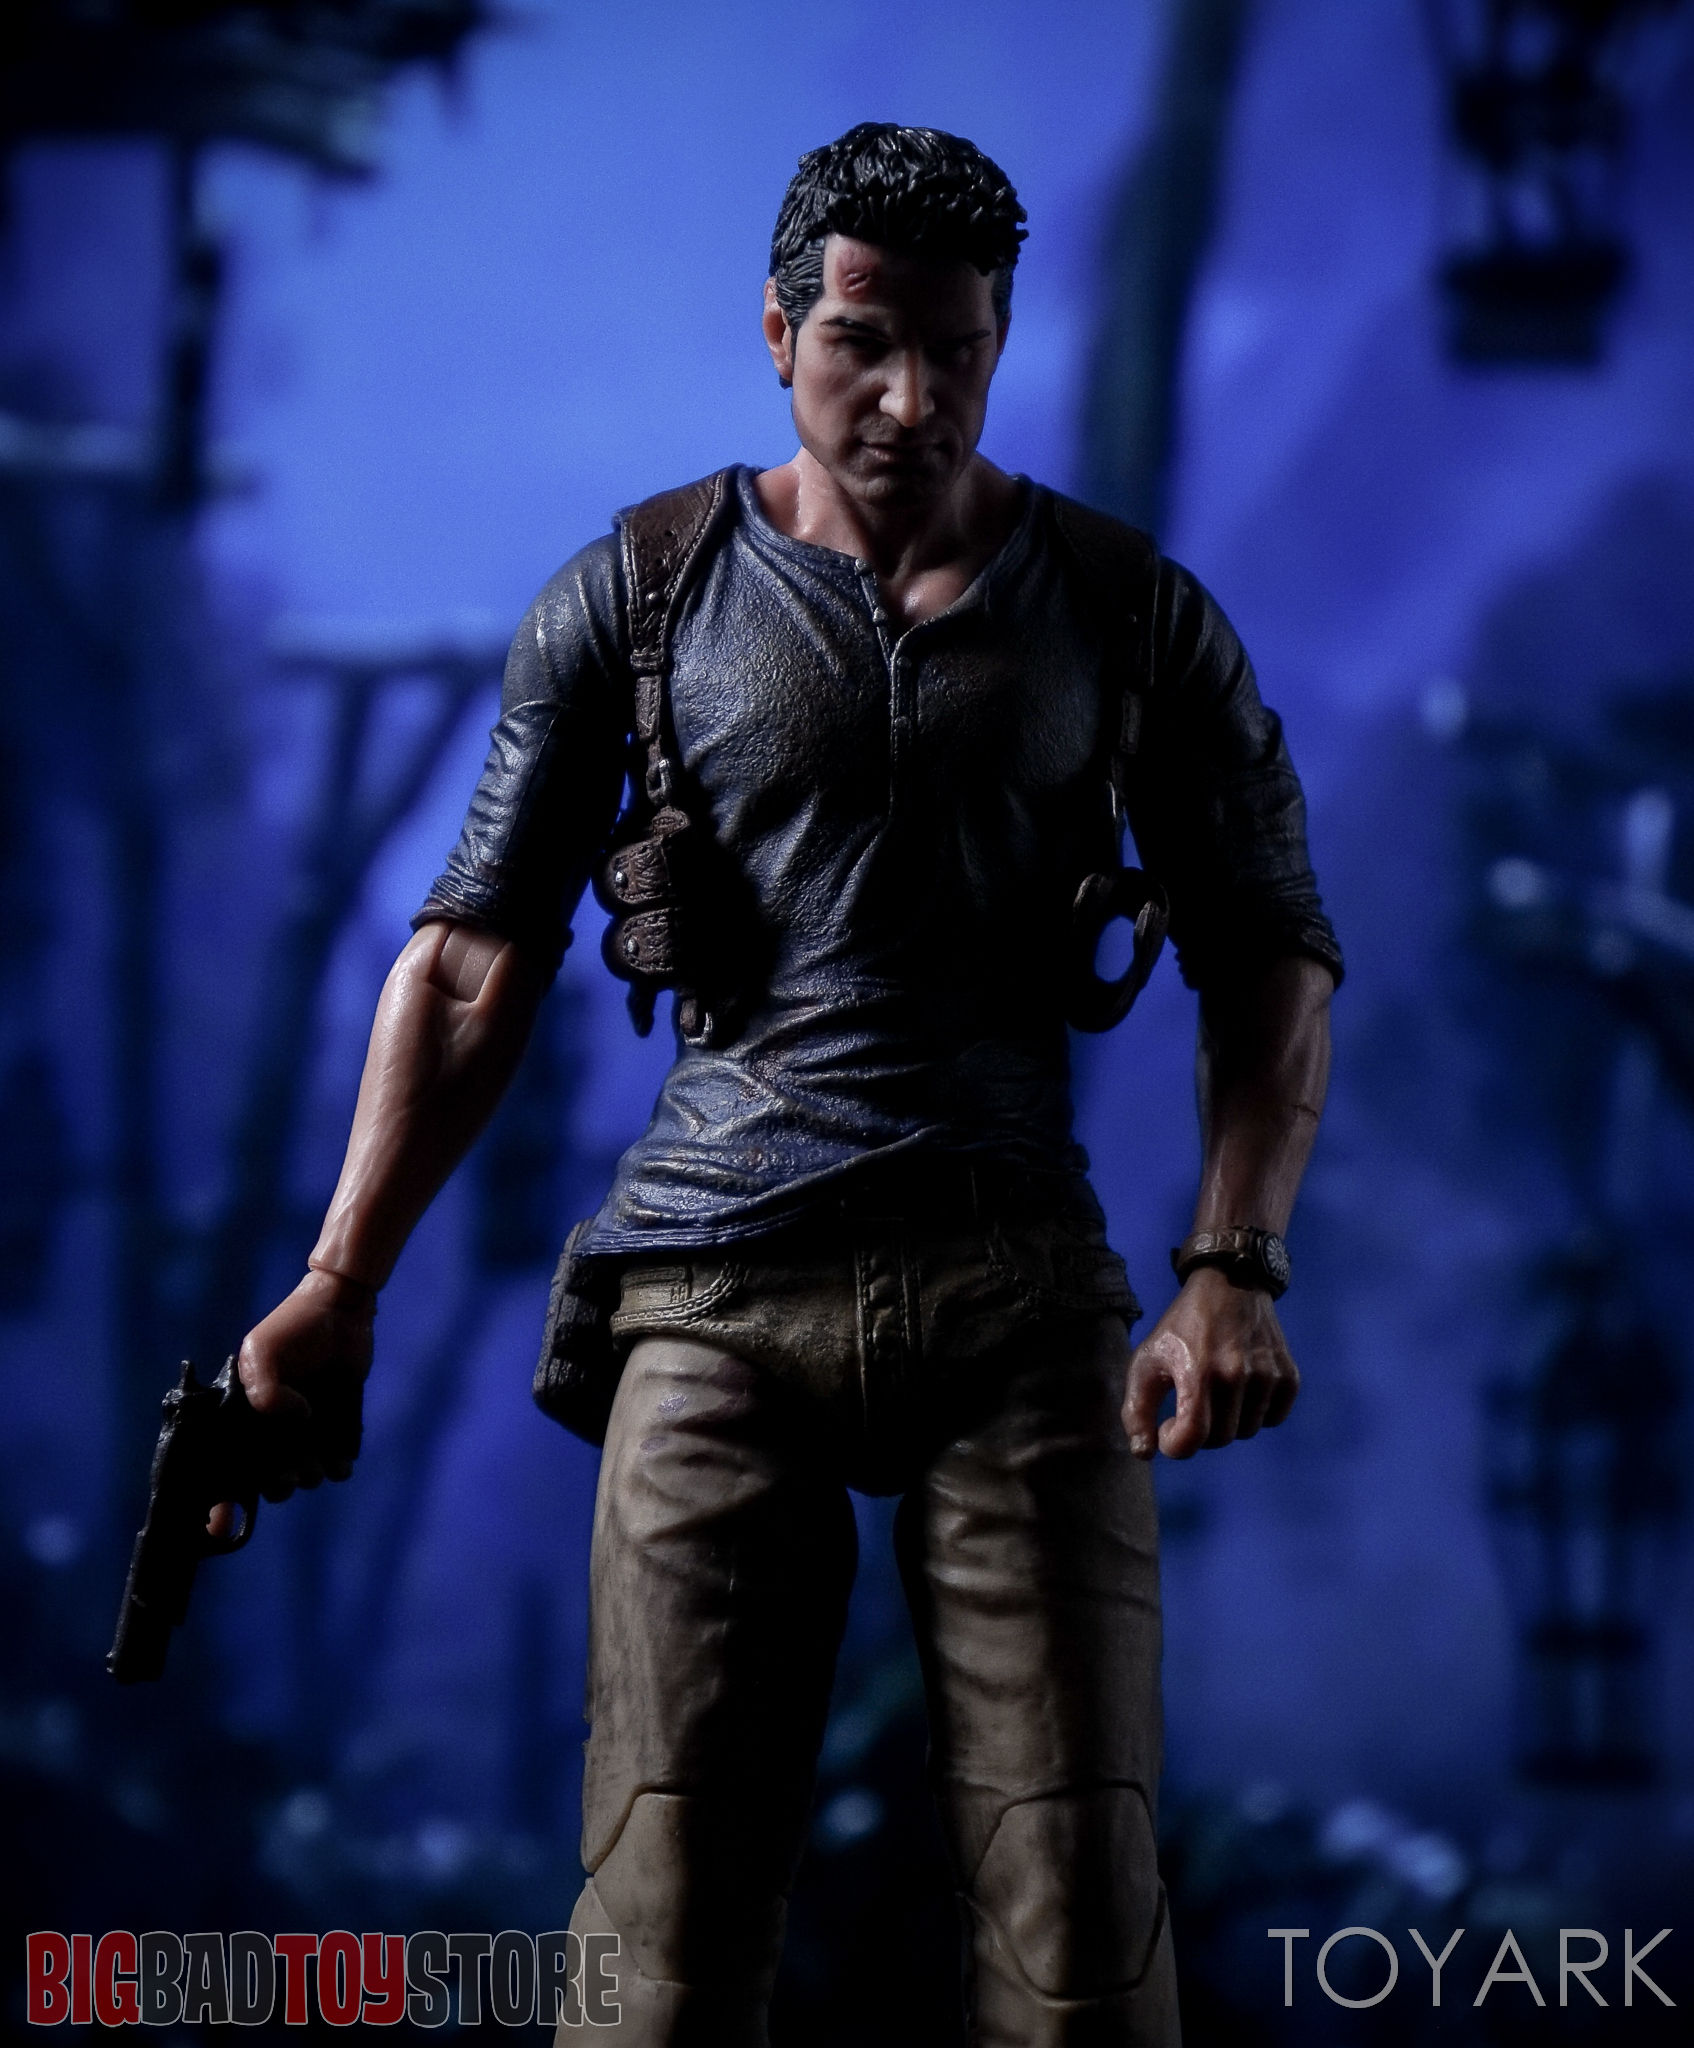 http://news.toyark.com/wp-content/uploads/sites/4/2016/09/NECA-Uncharted-4-Nathan-Drake-041.jpg